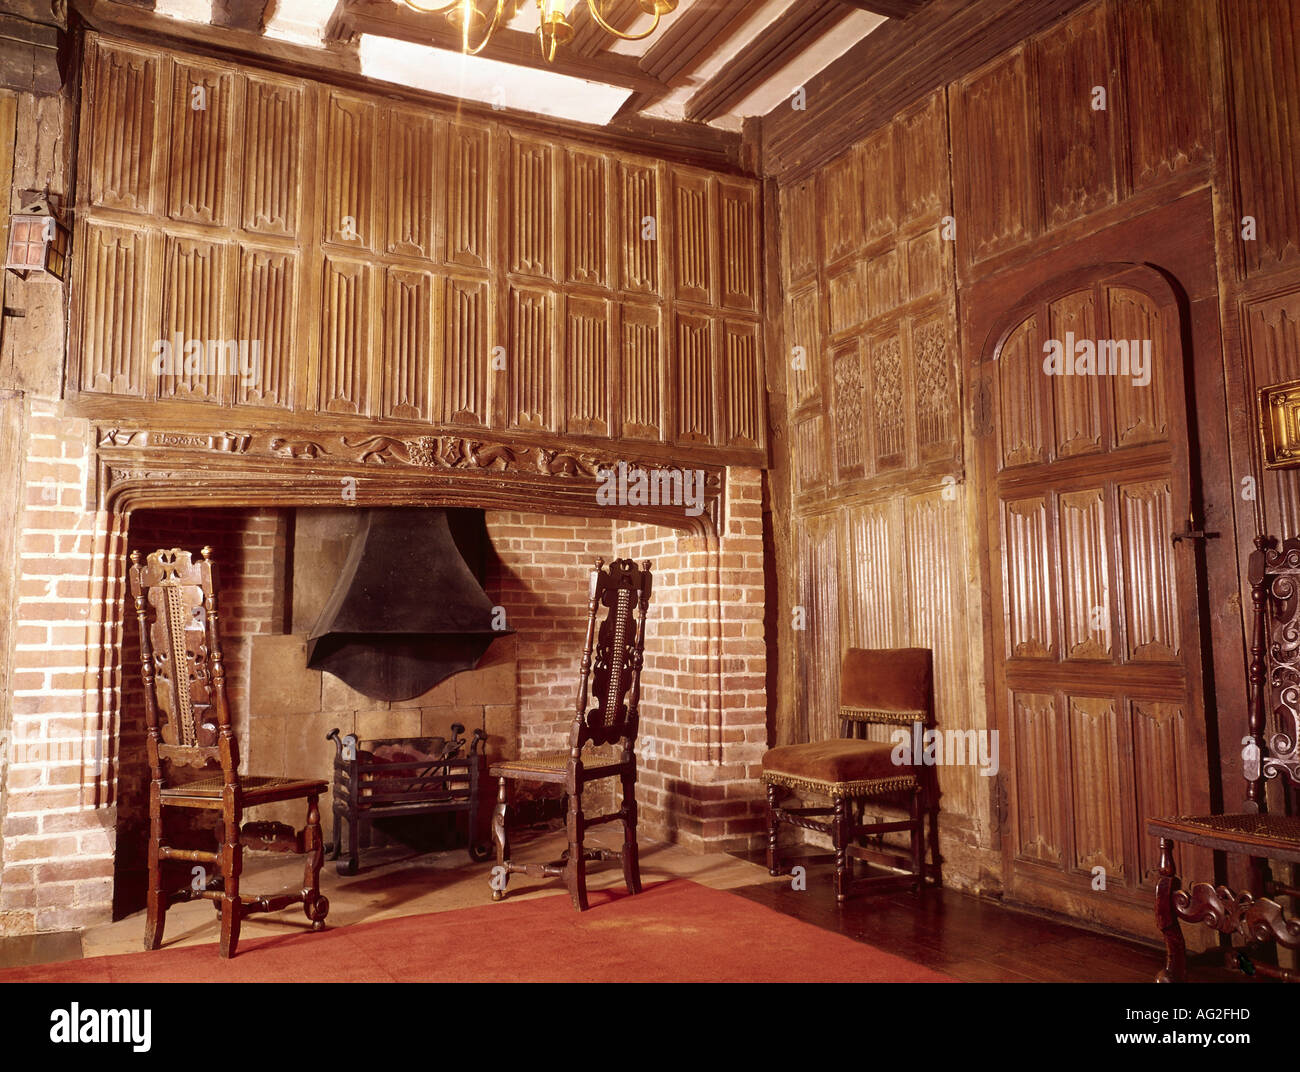 Country houses interior - Stock Photo Architecture Buildings Villas Country Houses City Palace English Country House Interior View Great Britain Historic H